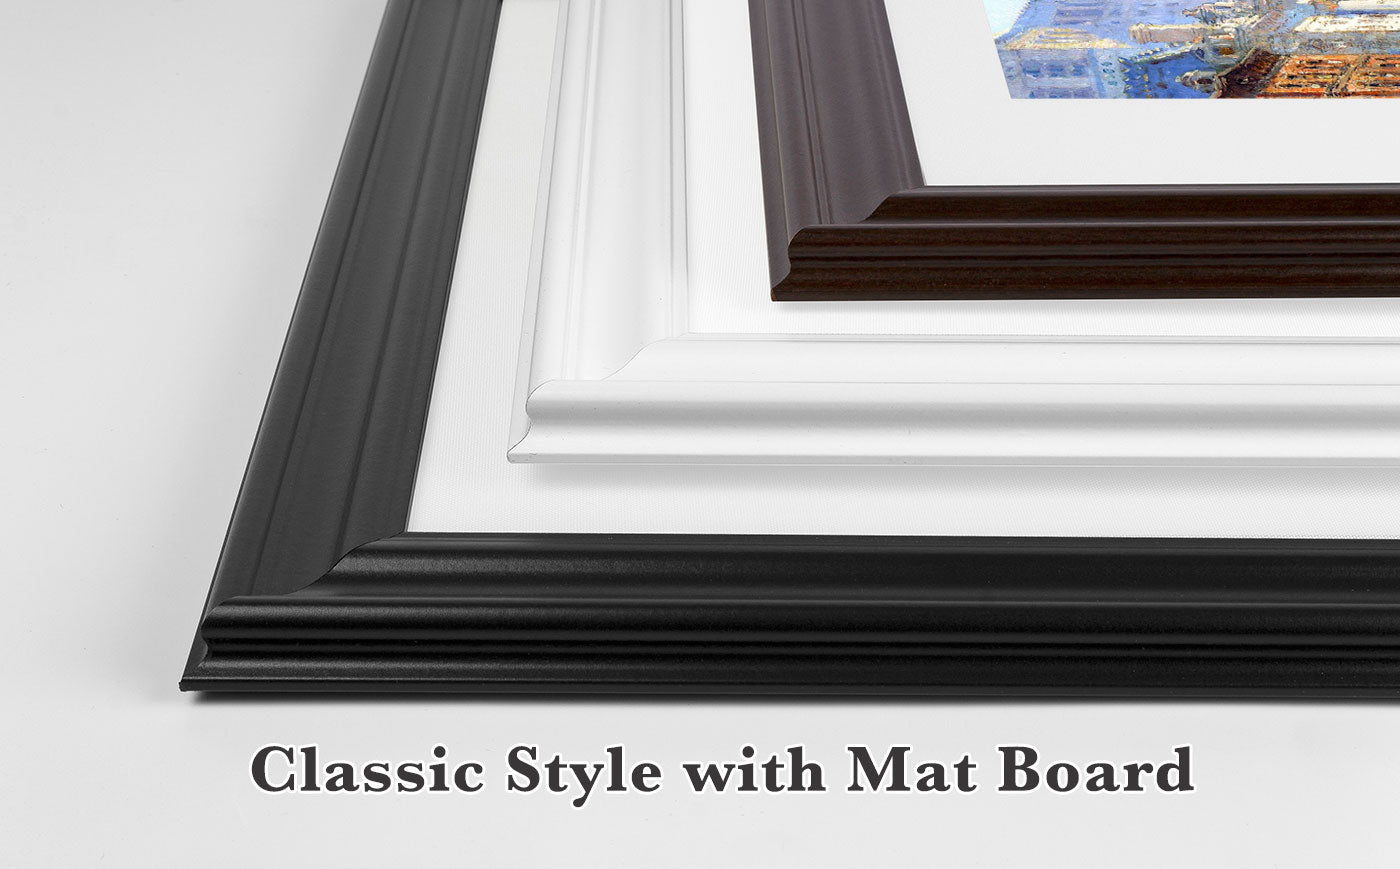 Classical Style with Mat Board